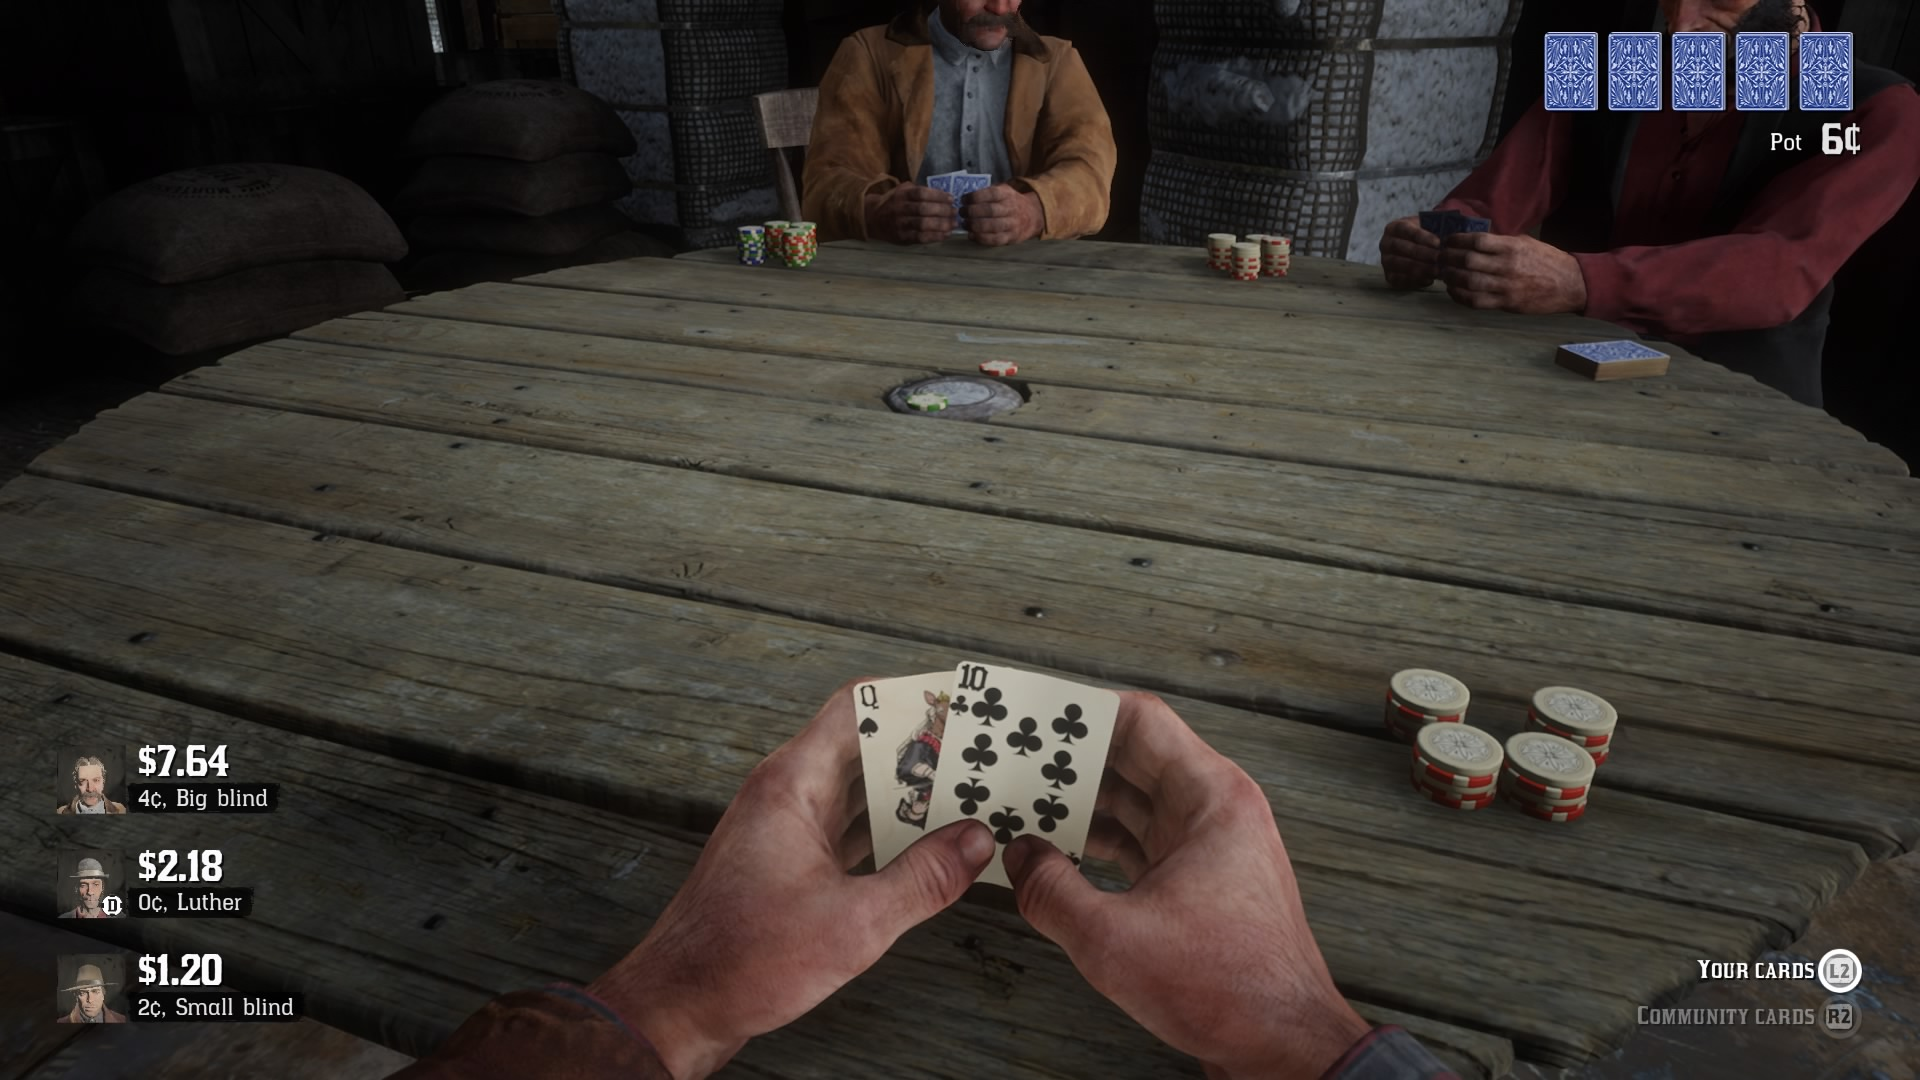 Rockstar has a workaround for Red Dead Redemption 2's missing people bug